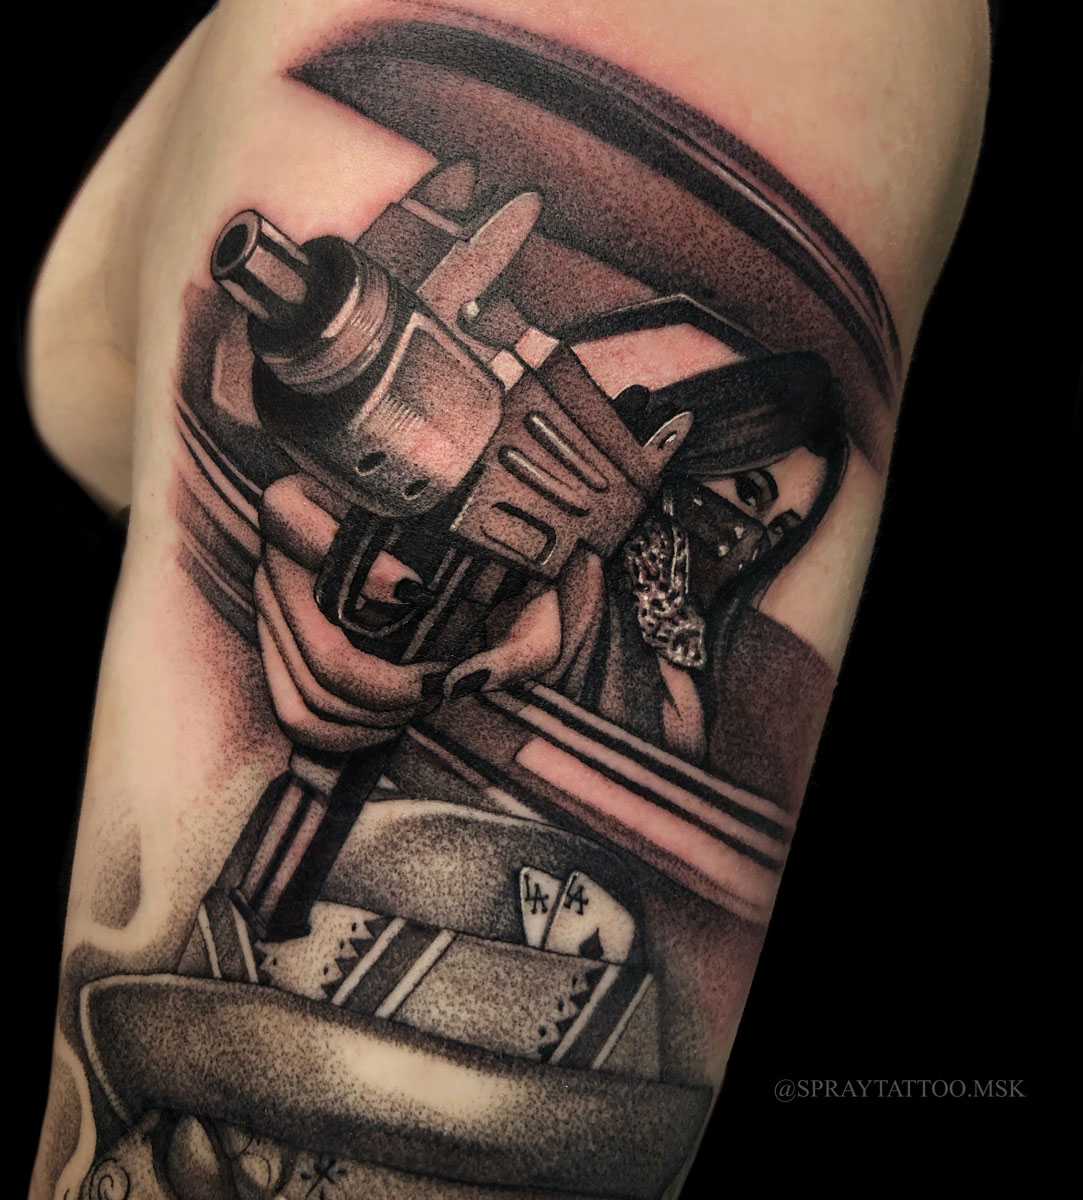 Spray Gun Tattoo